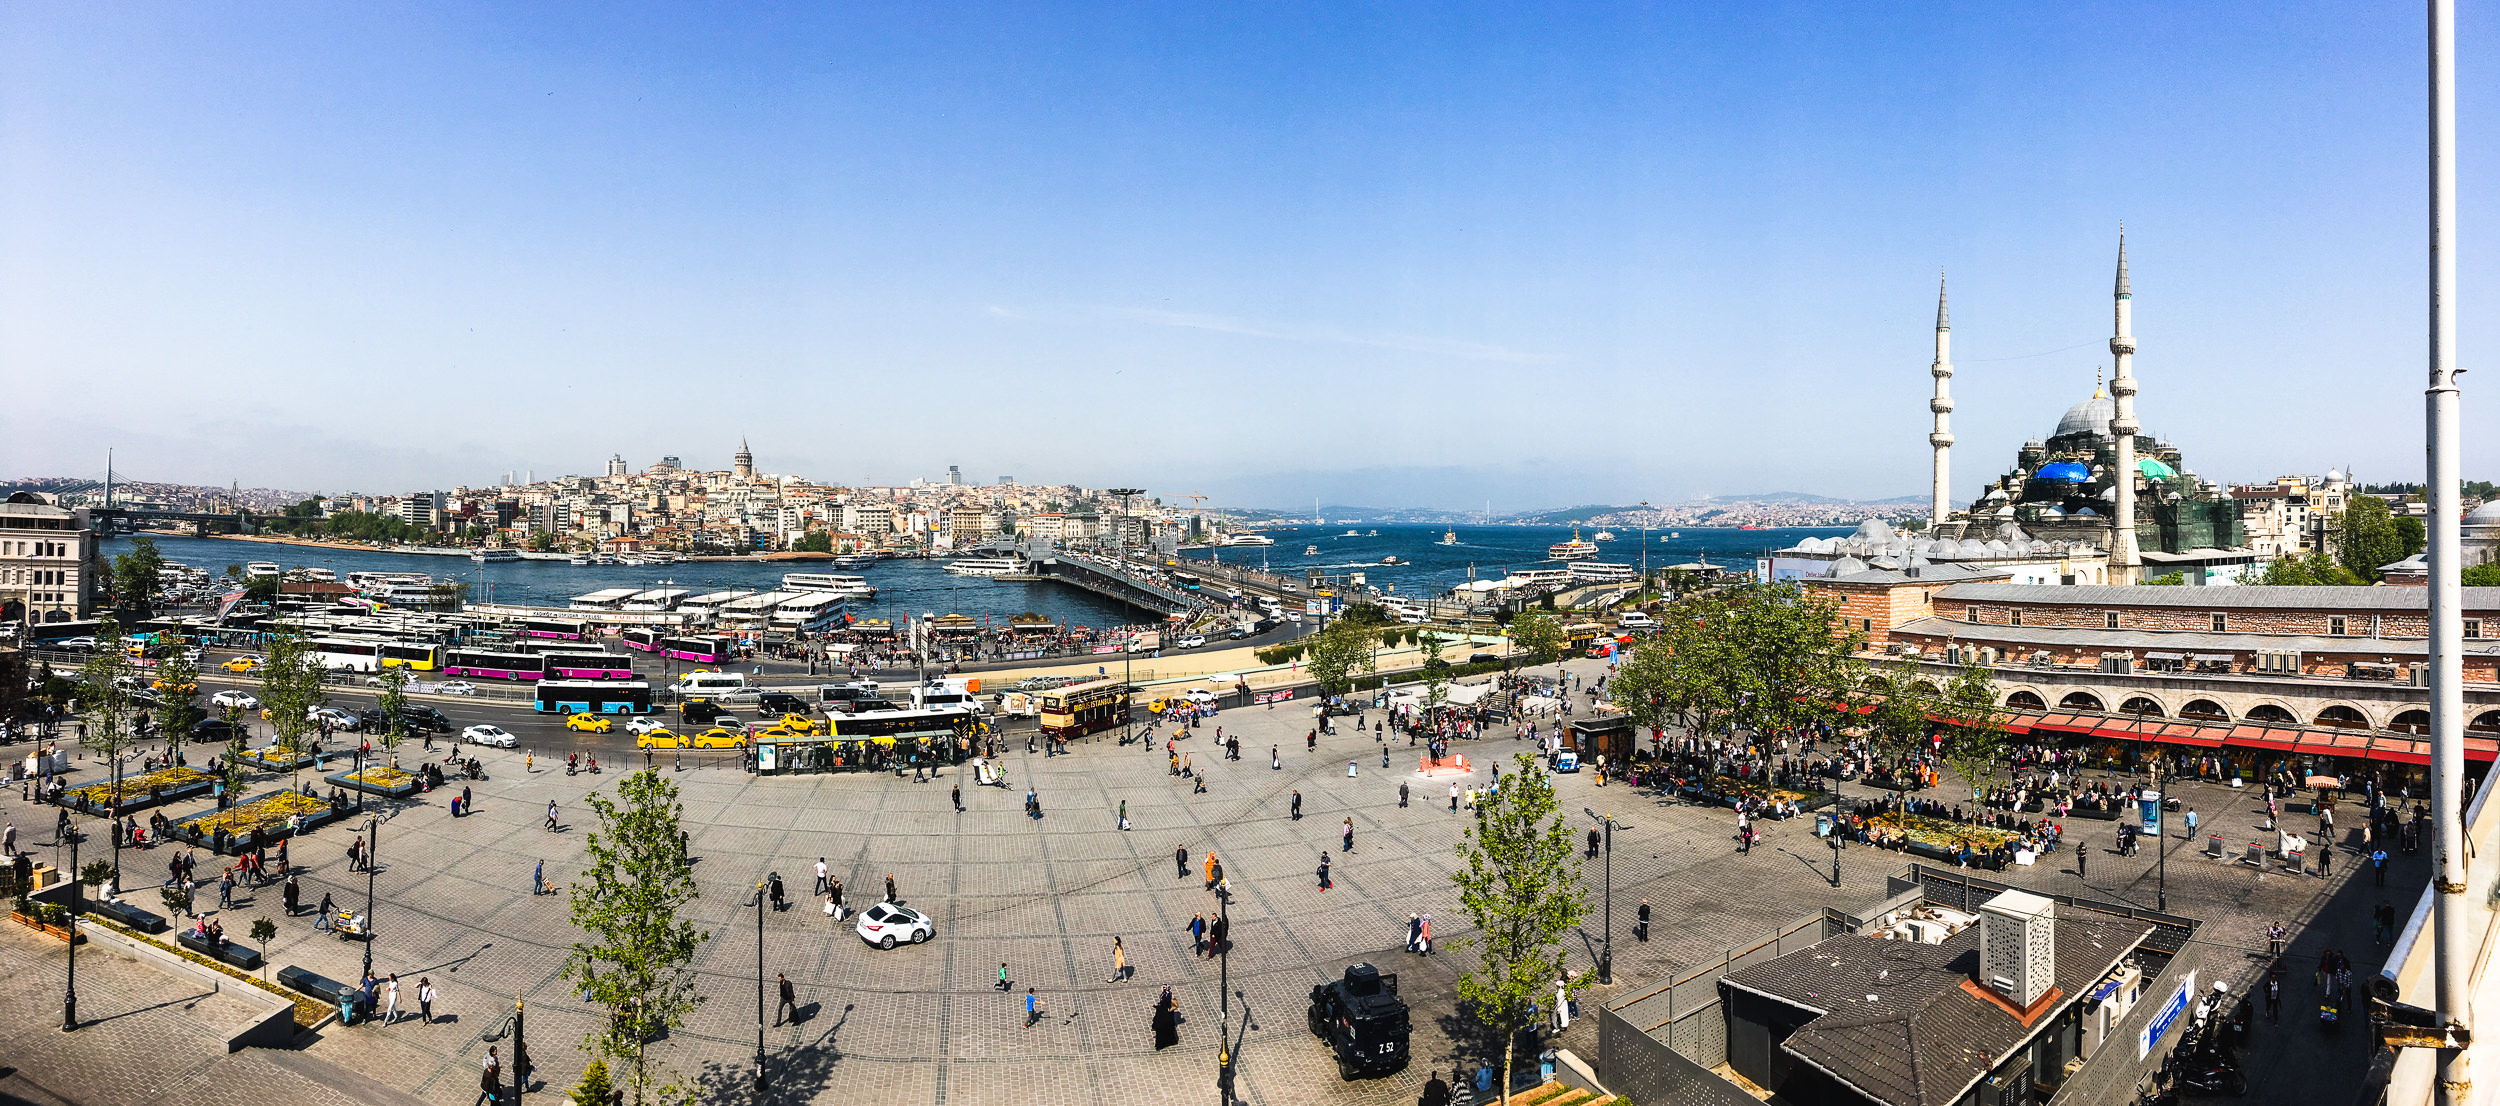 Panorama of Eminonu with the Galata Bridge from the Hamdi Restaurant.